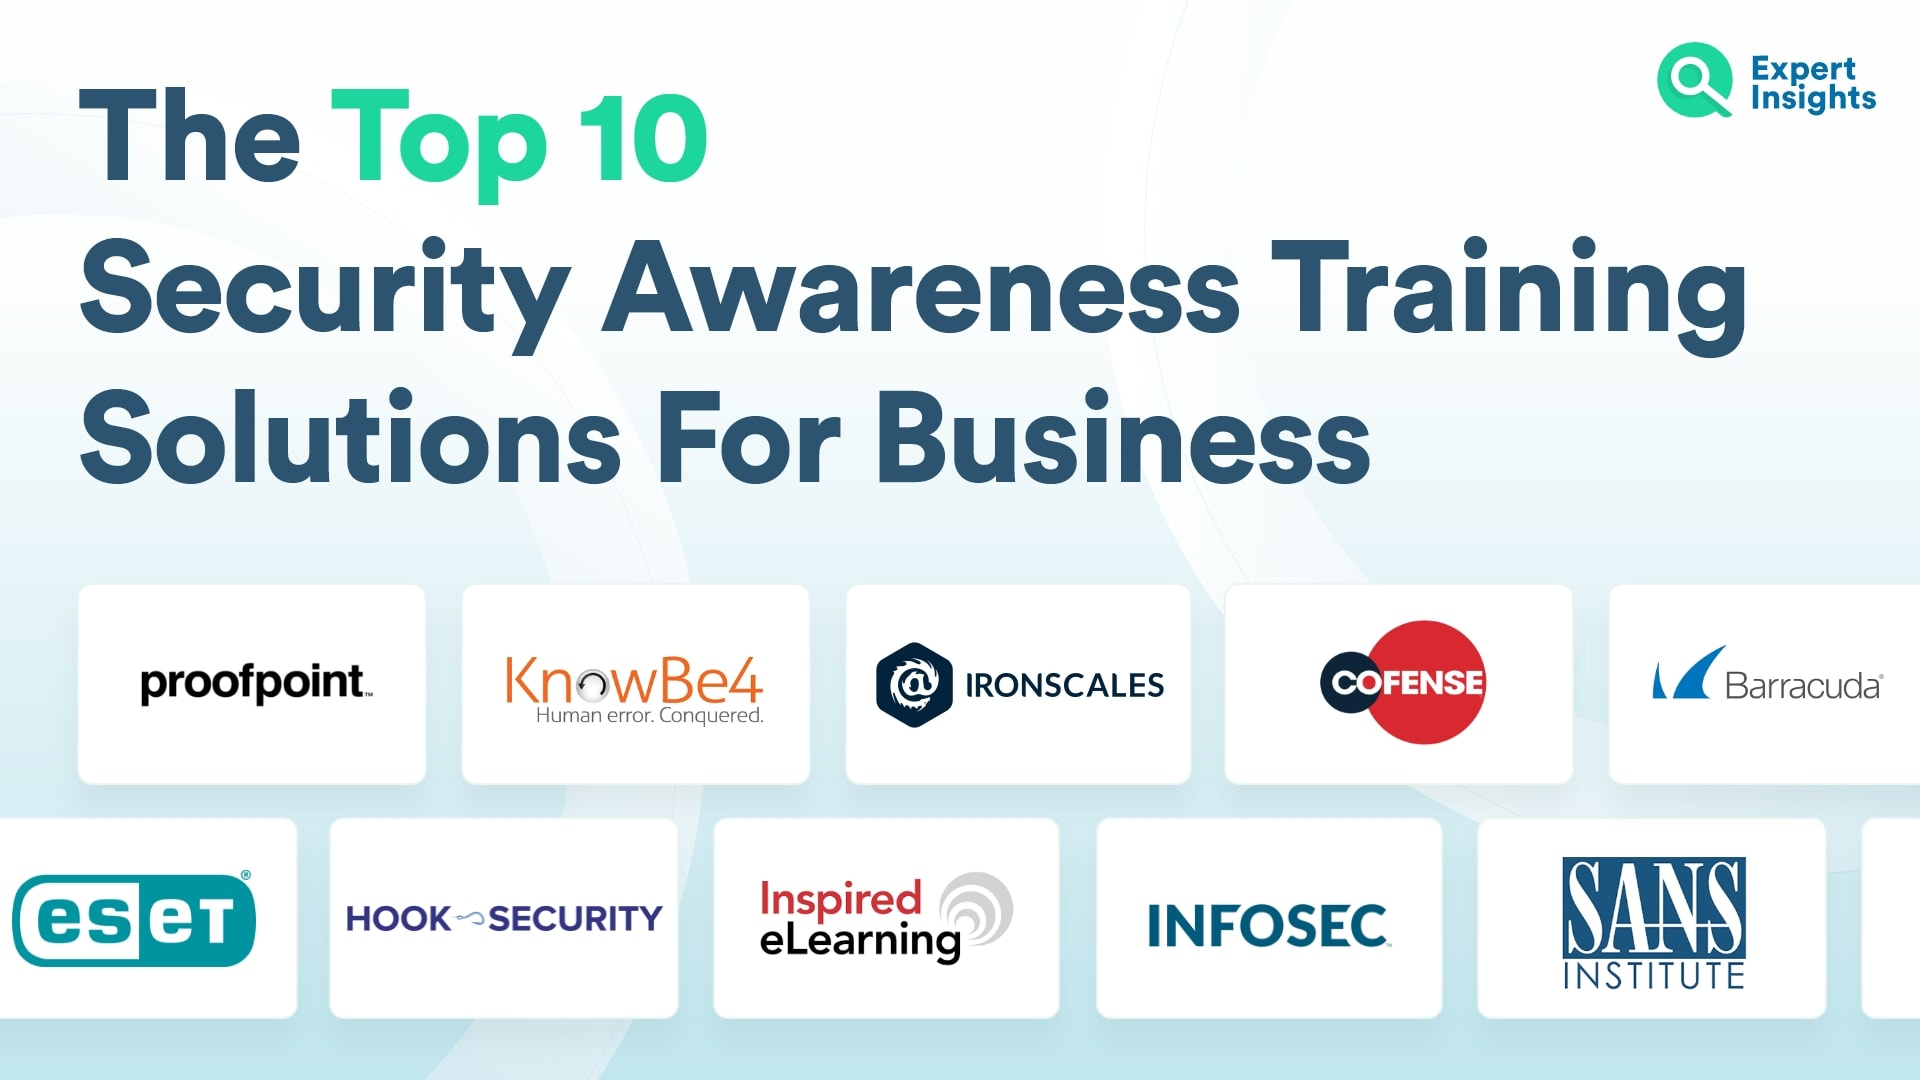 Top 10 Security Awareness Training Solutions For Business - Expert Insights